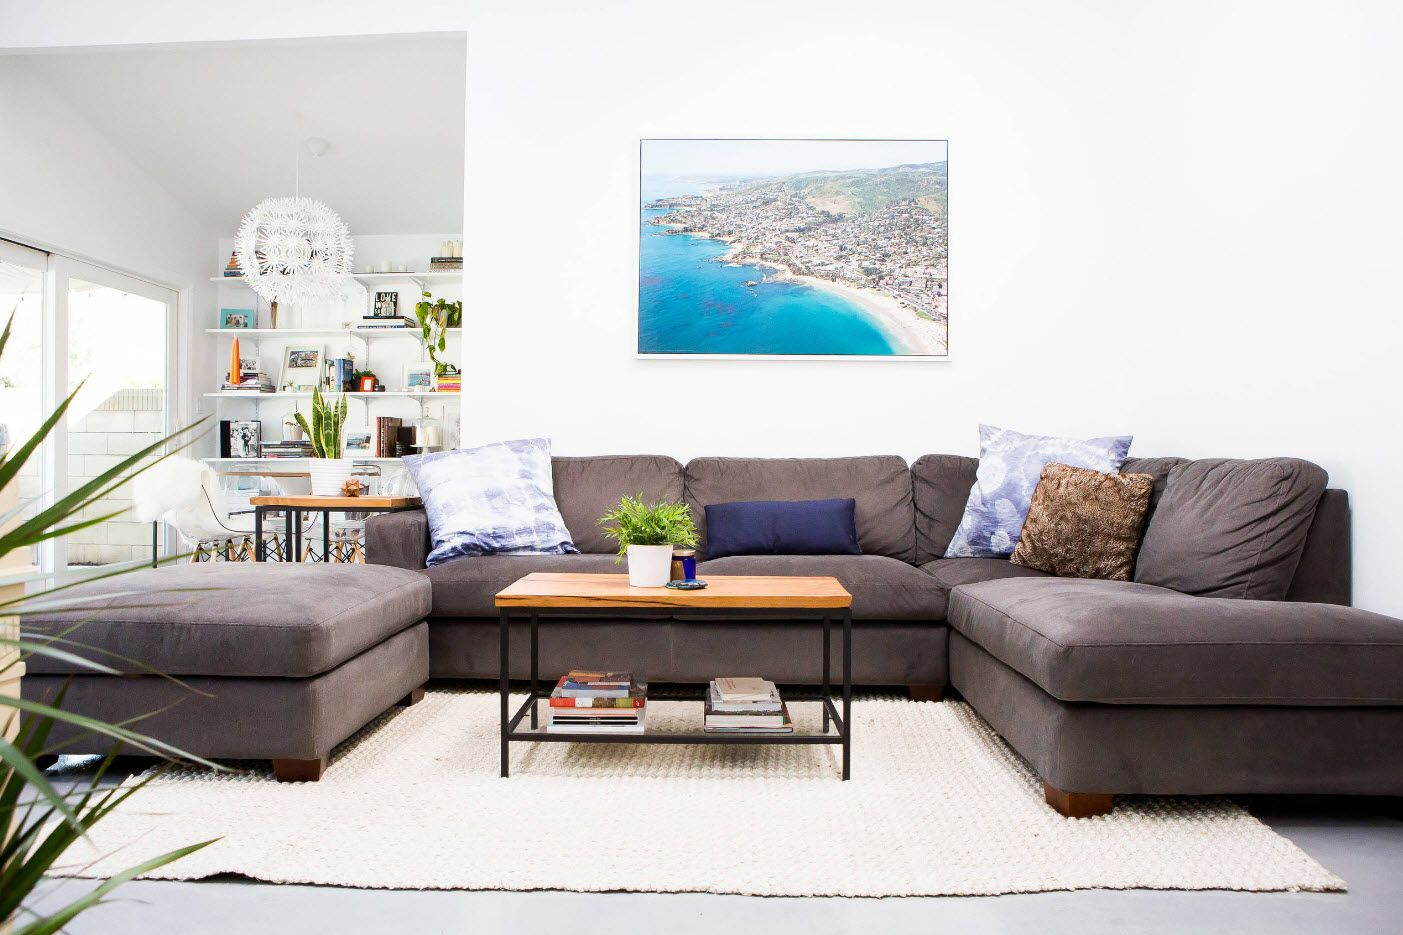 Sea landscape at the picture in modern living room